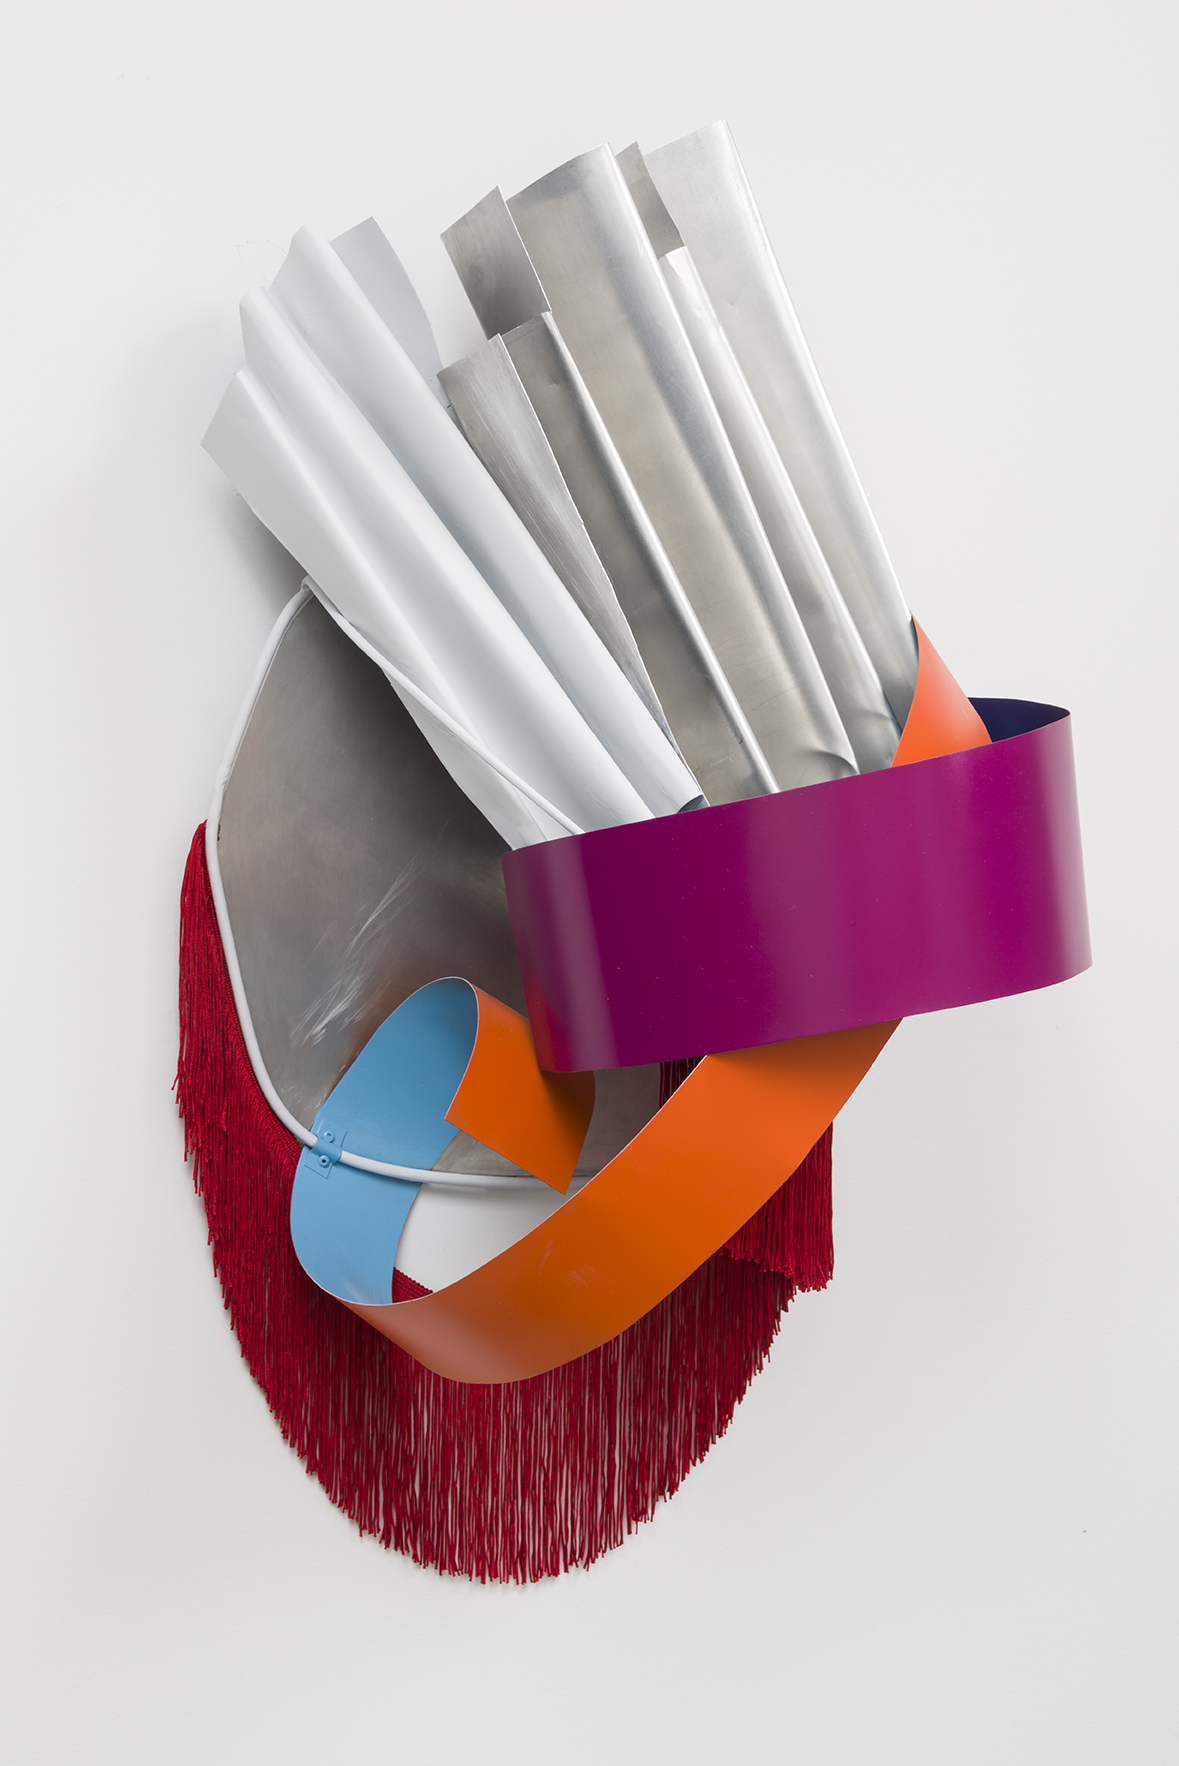 """Nora Shields - Untitled (Metal Relief) - 2016 - Acrylic, Stainless Steel, Fringe, Aluminum - 34   x 16 x 12"""""""